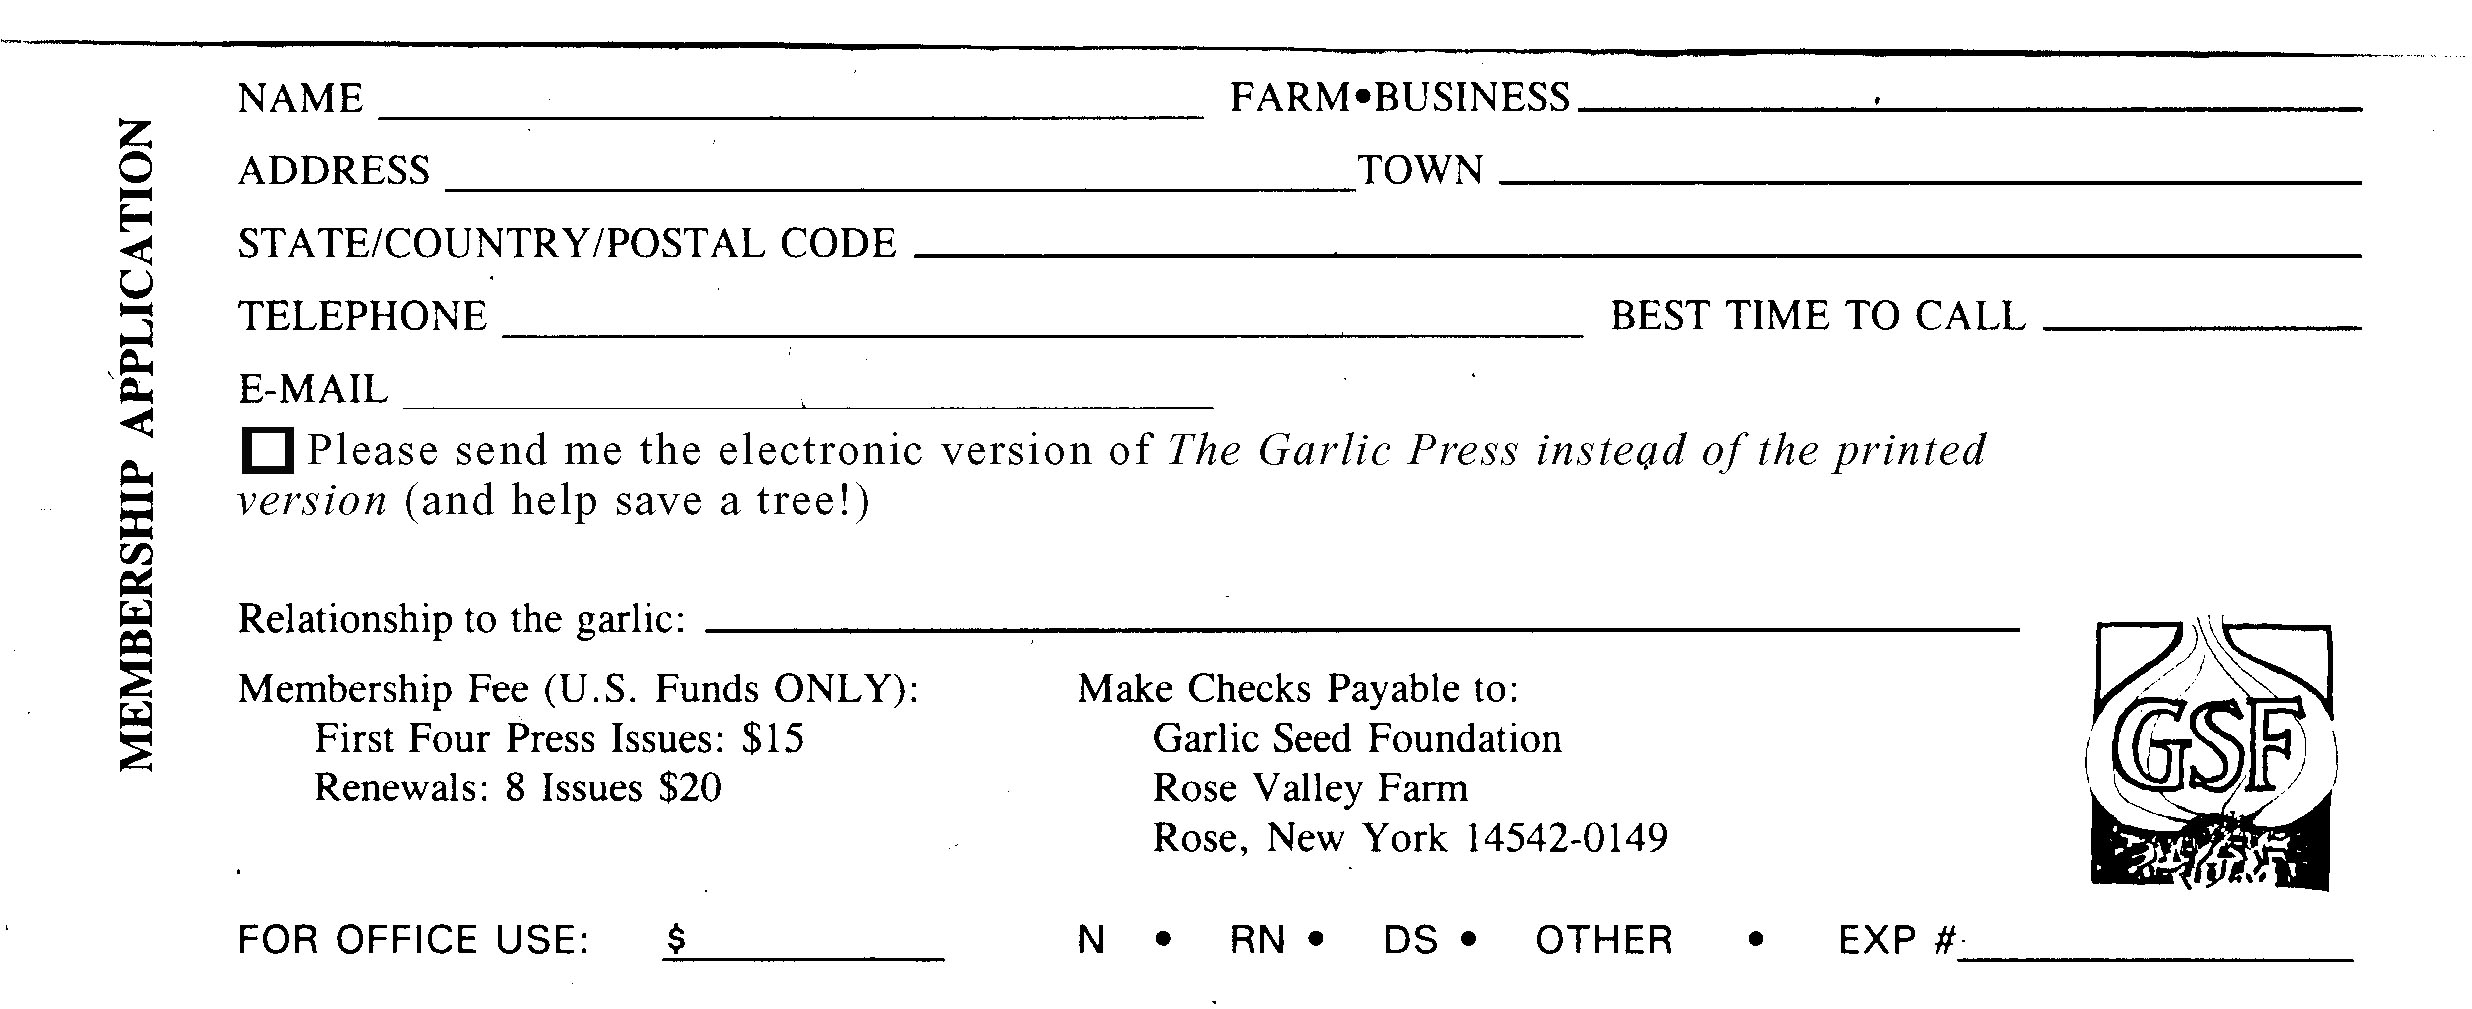 GSF Membership Join the Garlic Seed Foundation – Note Payables